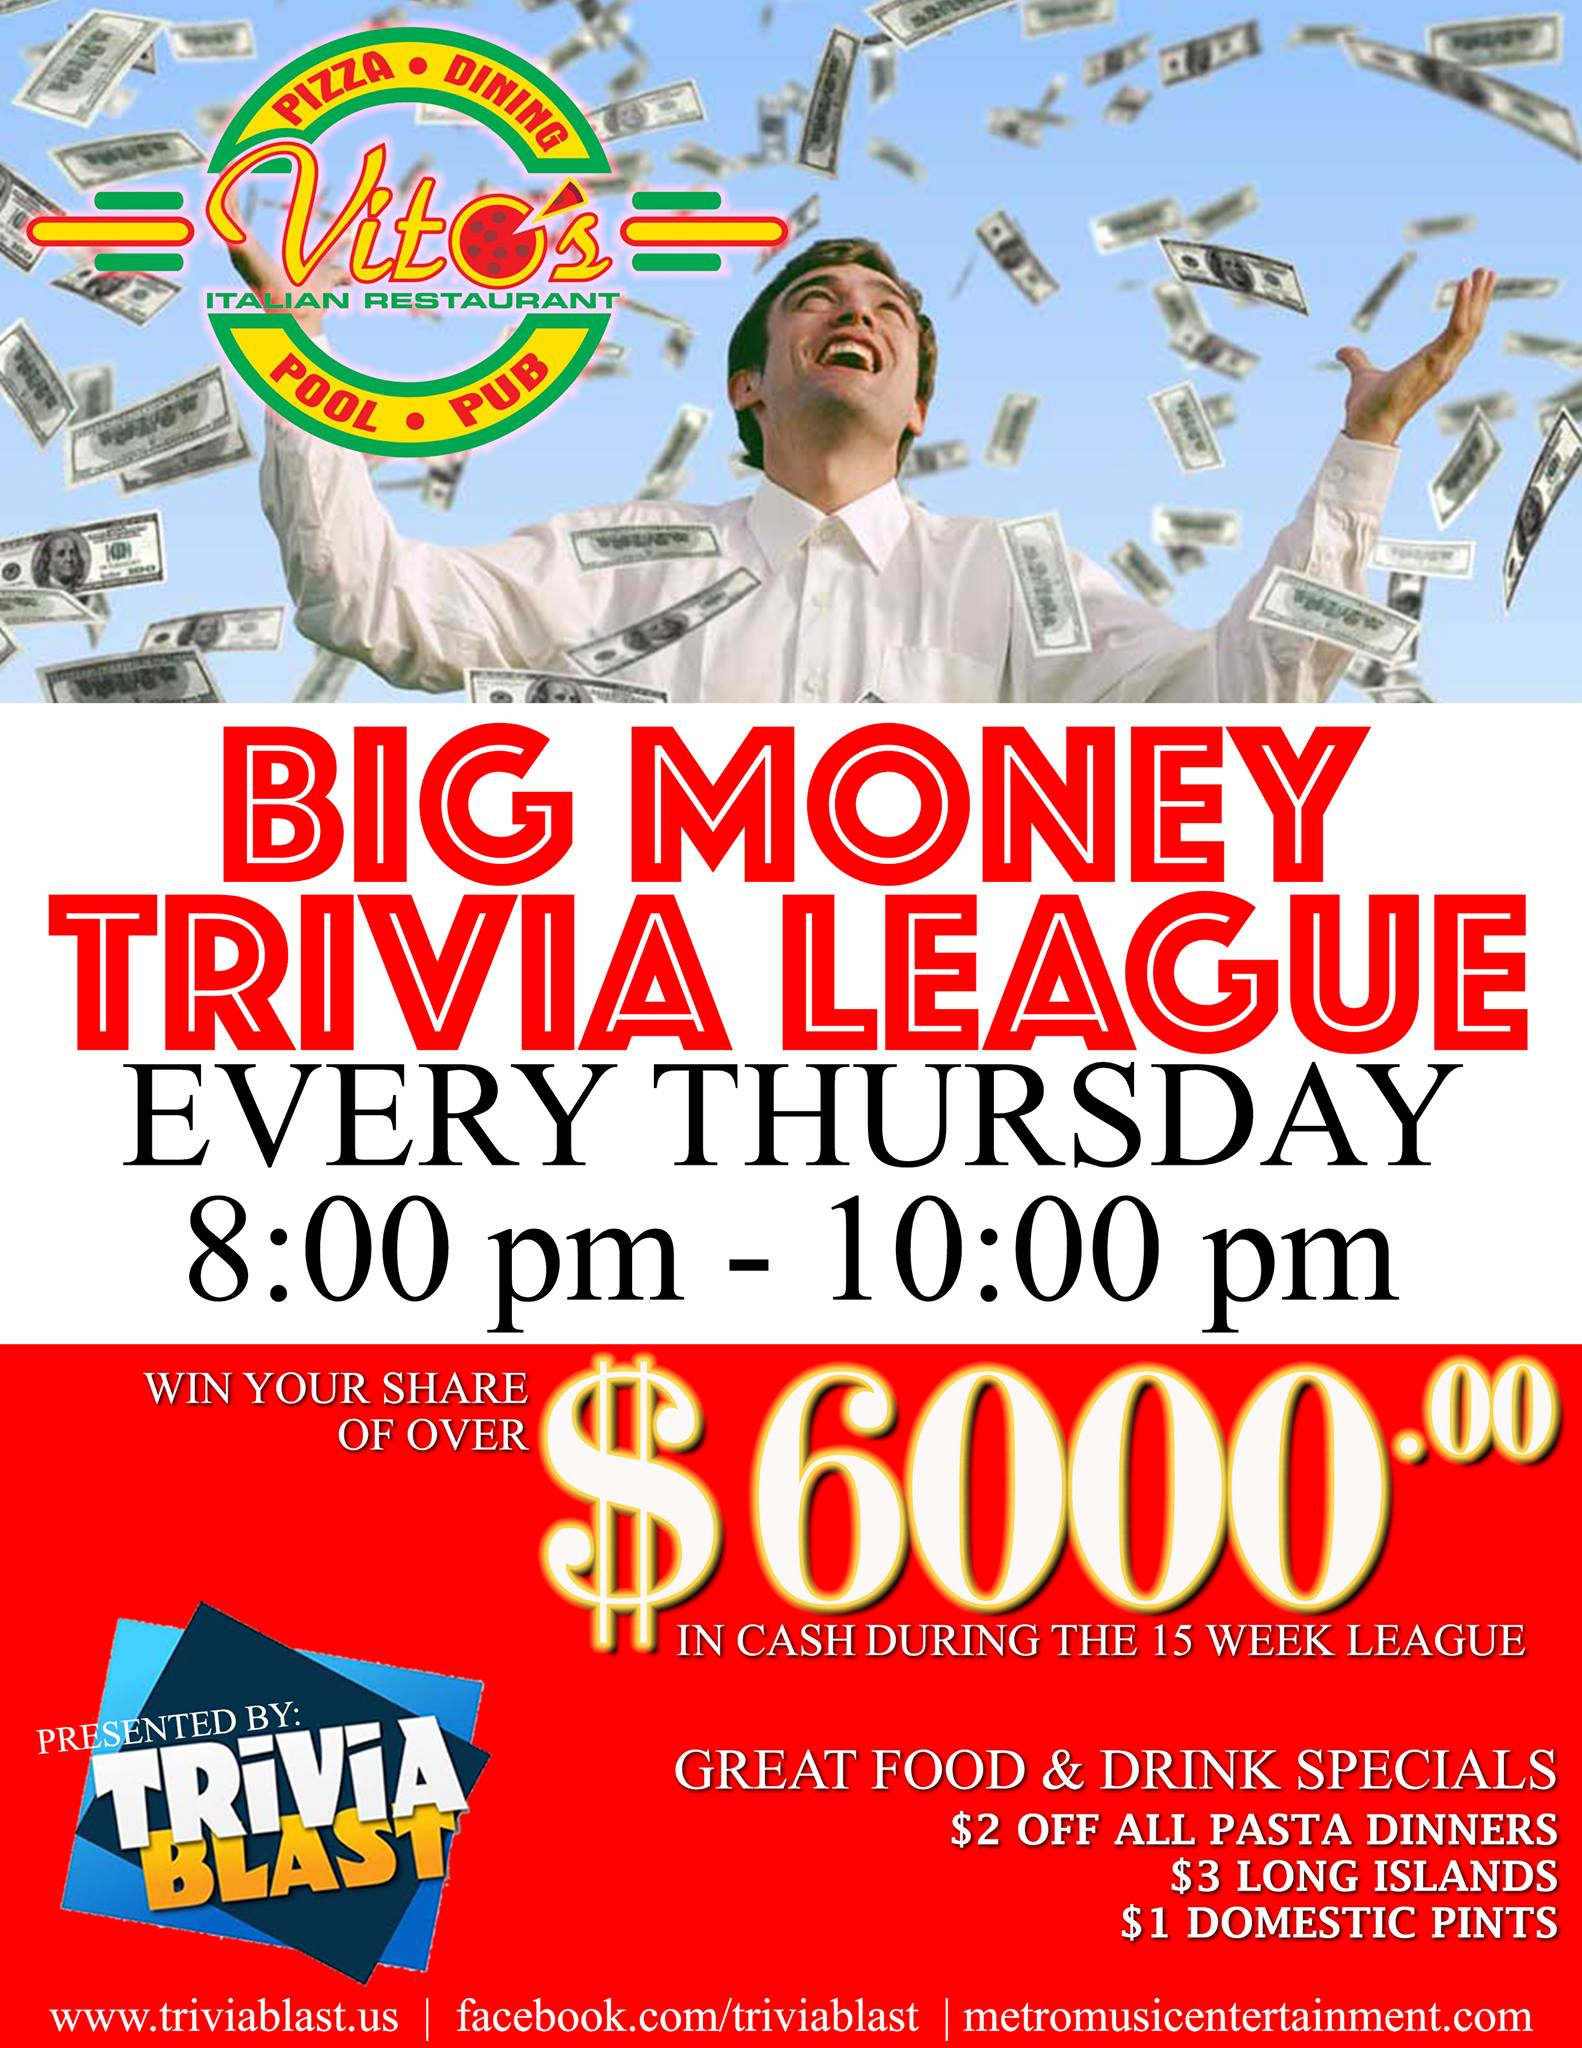 Big Money Trivia League!